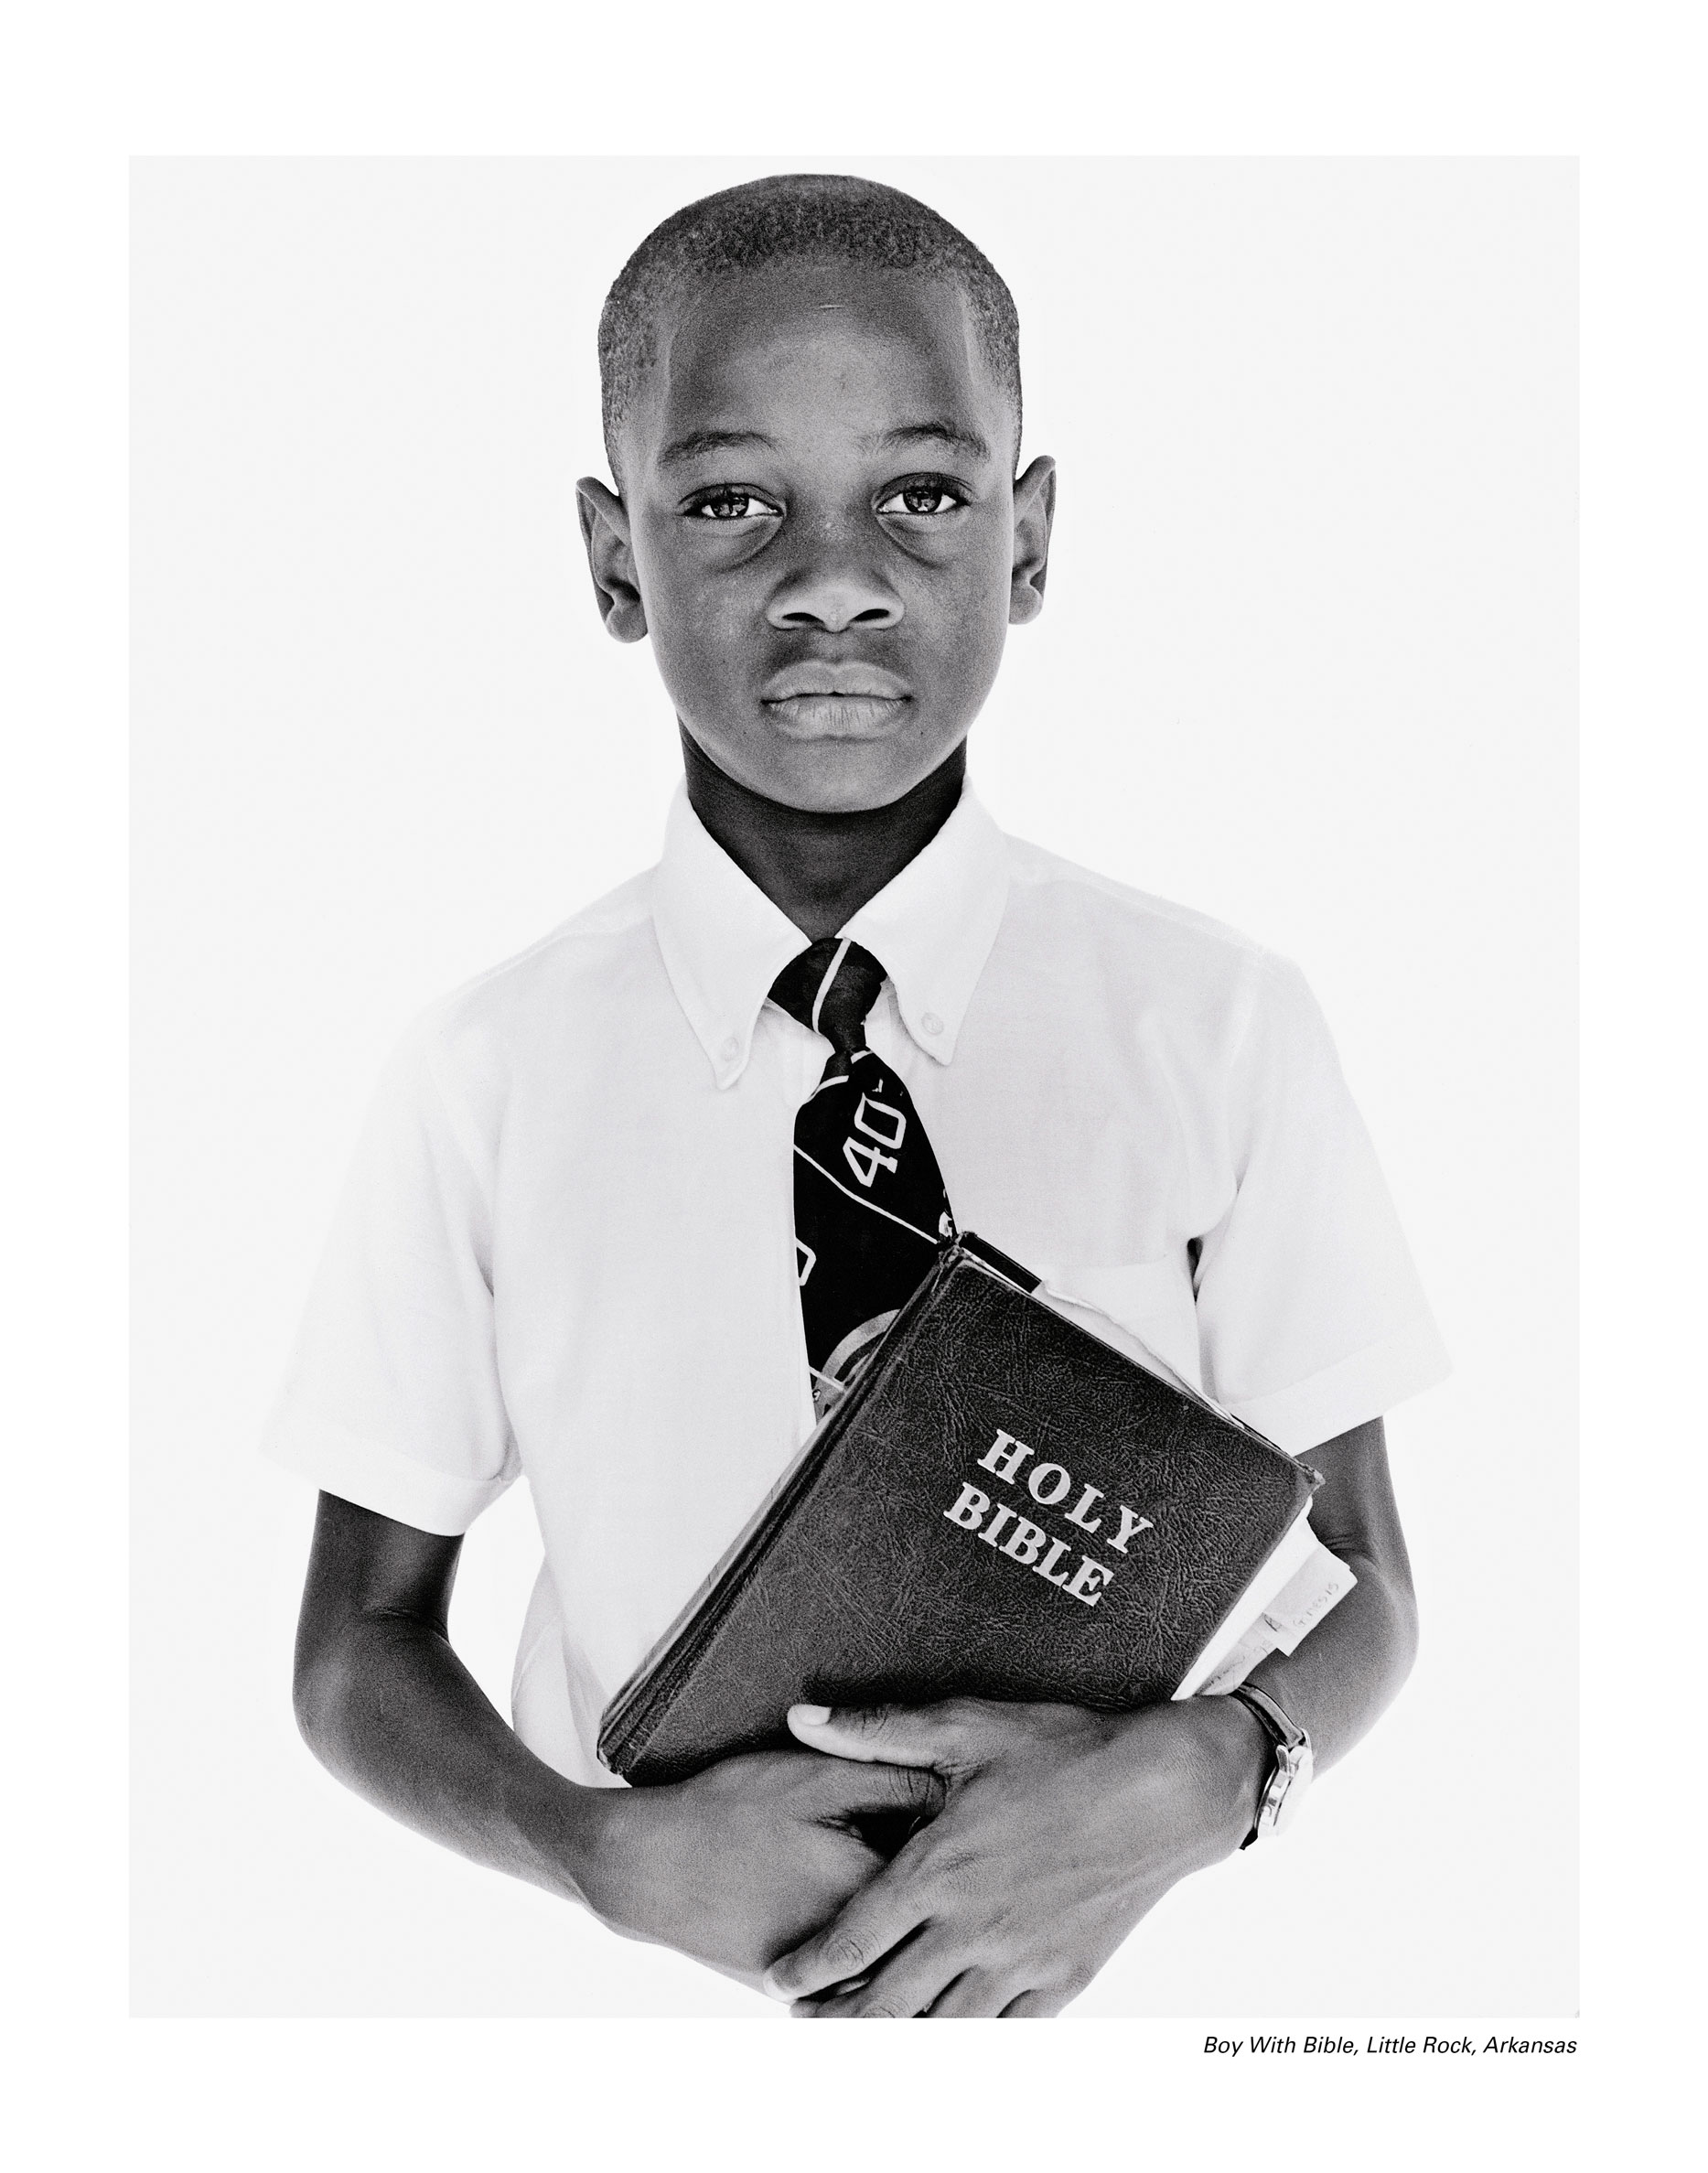 Boy_With_Bible_Arkansas.jpg